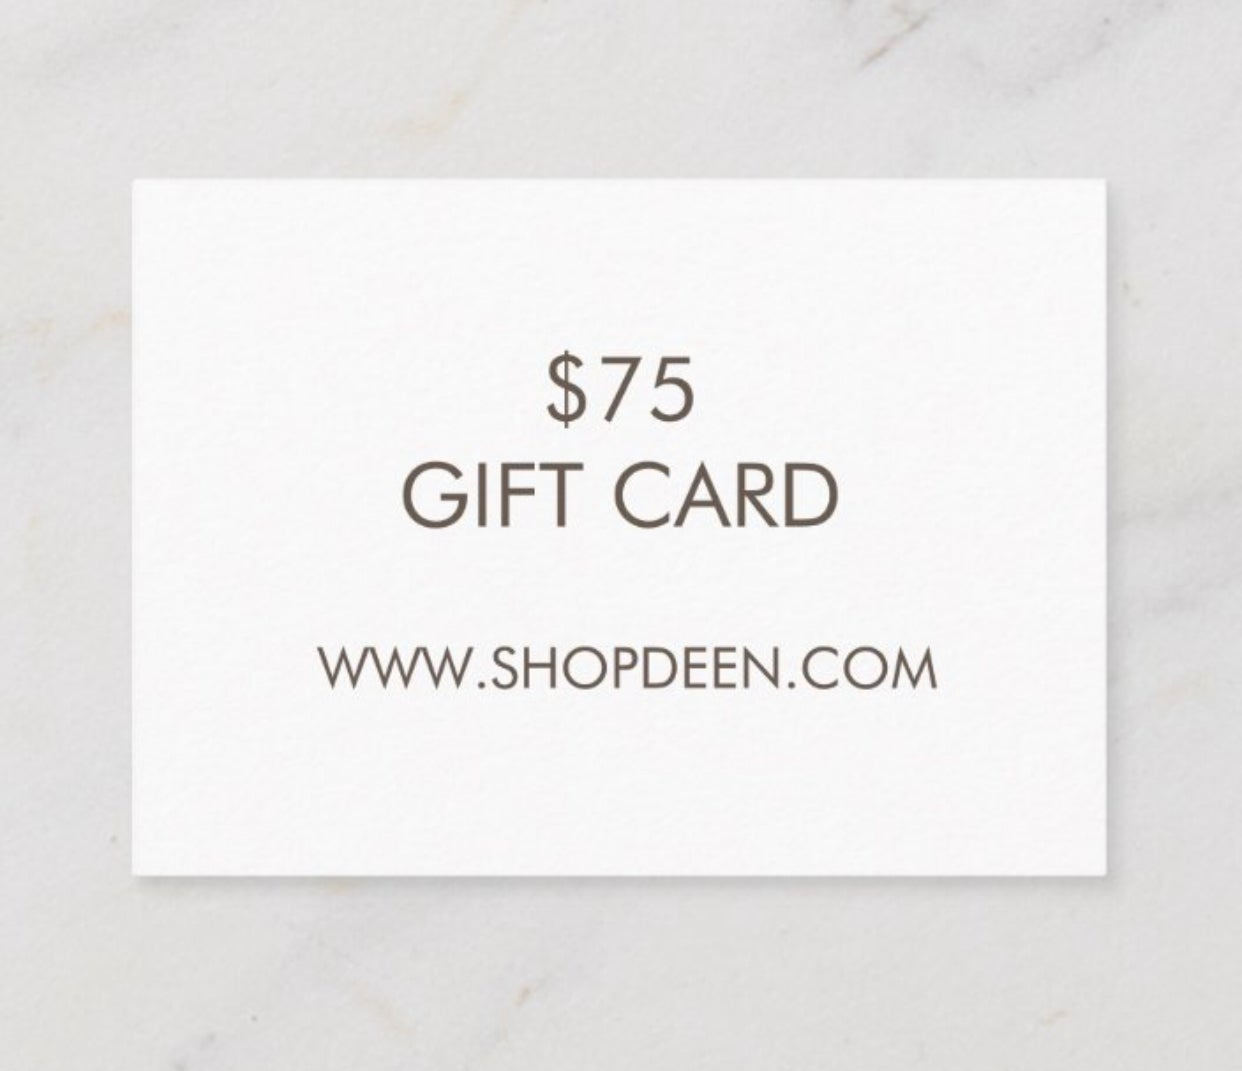 Image of $75 DEEN GIFT CARD